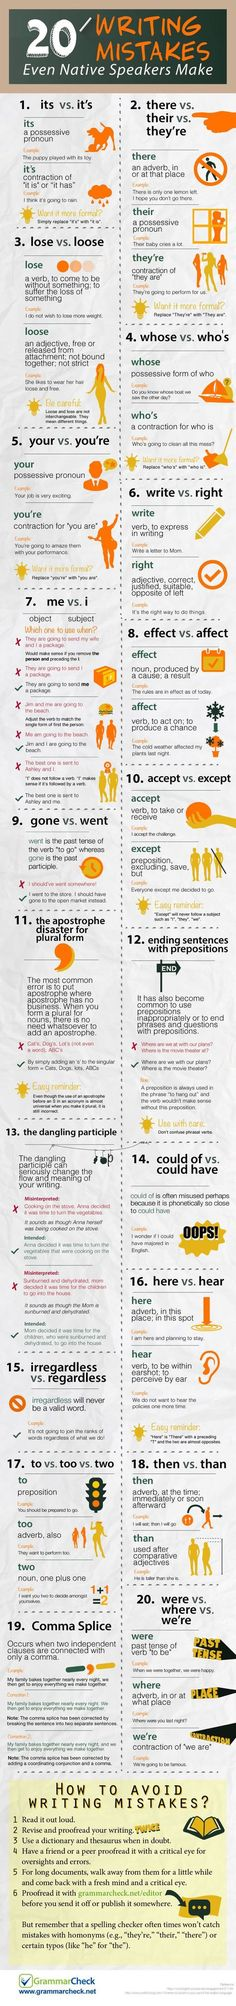 Online grammar editing tool Grammar Check has released the new infographic that lists writing English language writing mistakes. The list includes 20…